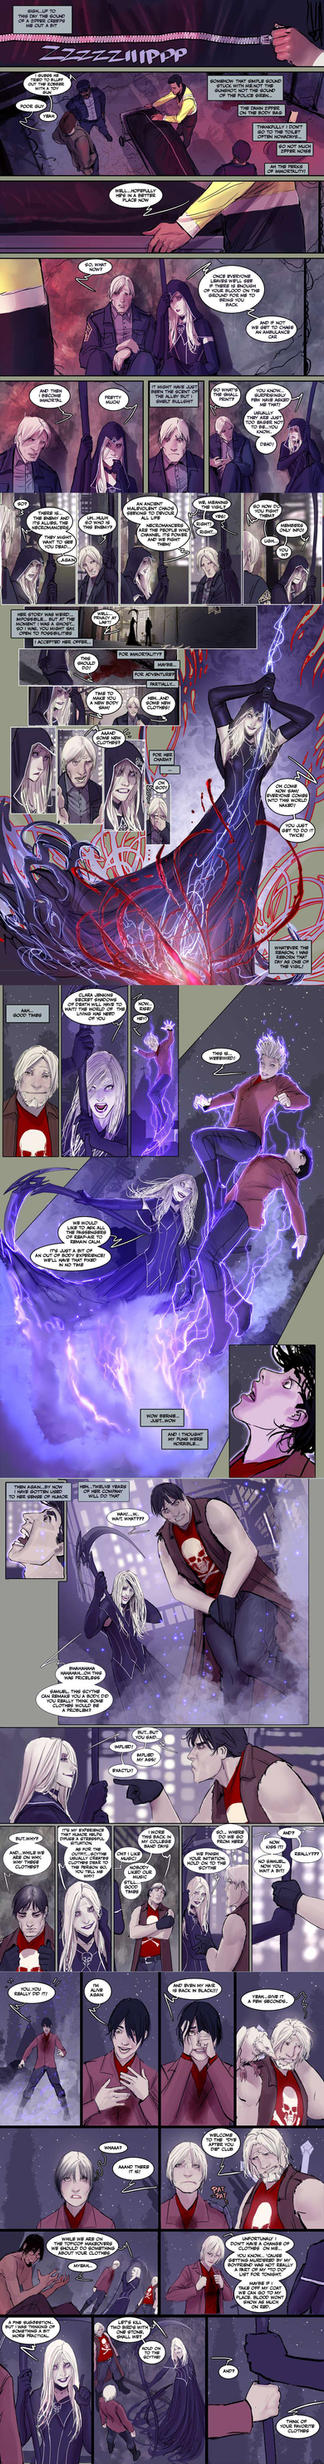 death vigil 2 first 5 pages first look :) by nebezial